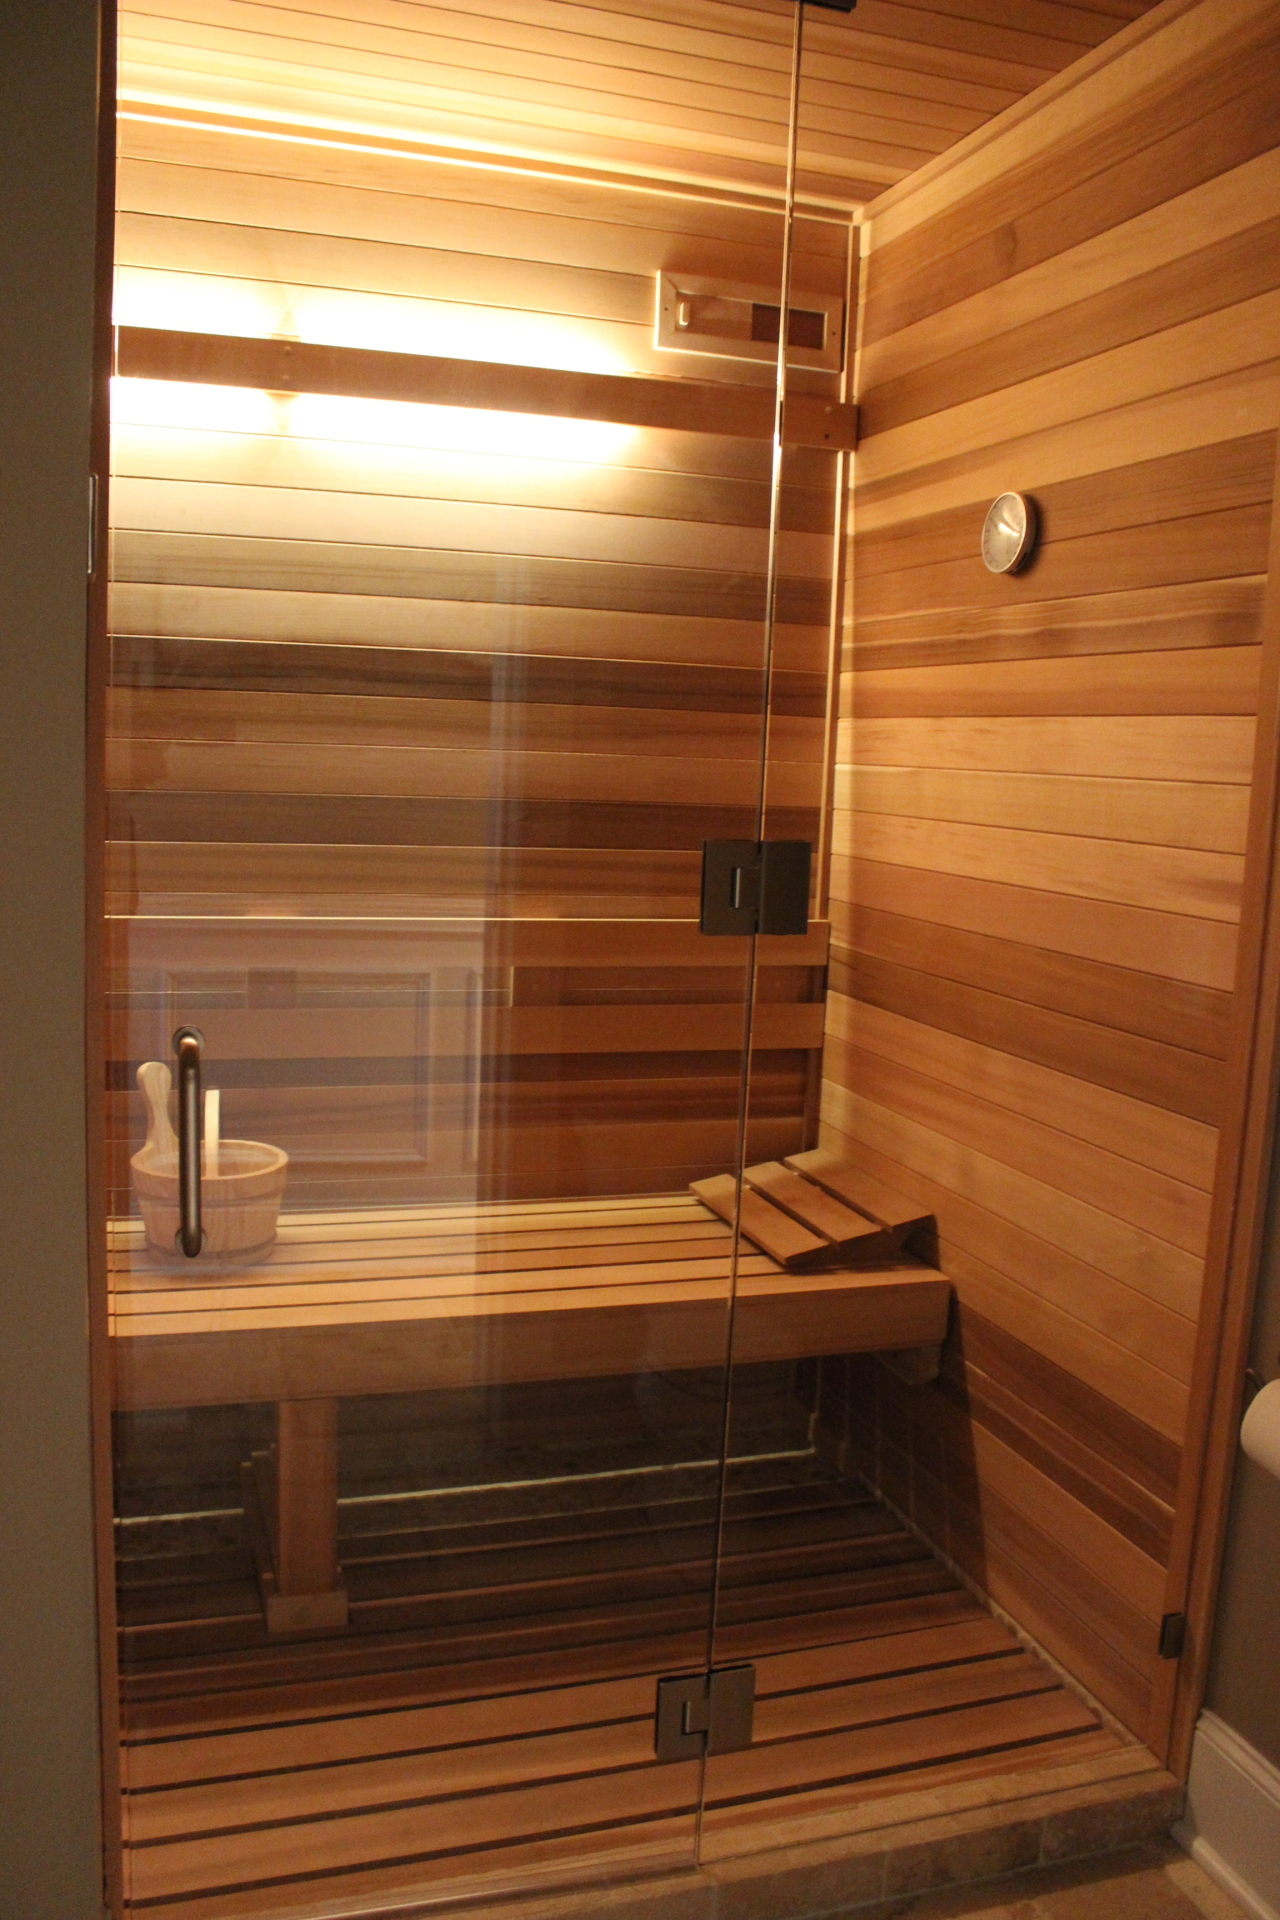 spa design, home interior, interior design, home sauna, cvioncompany, interior designer,